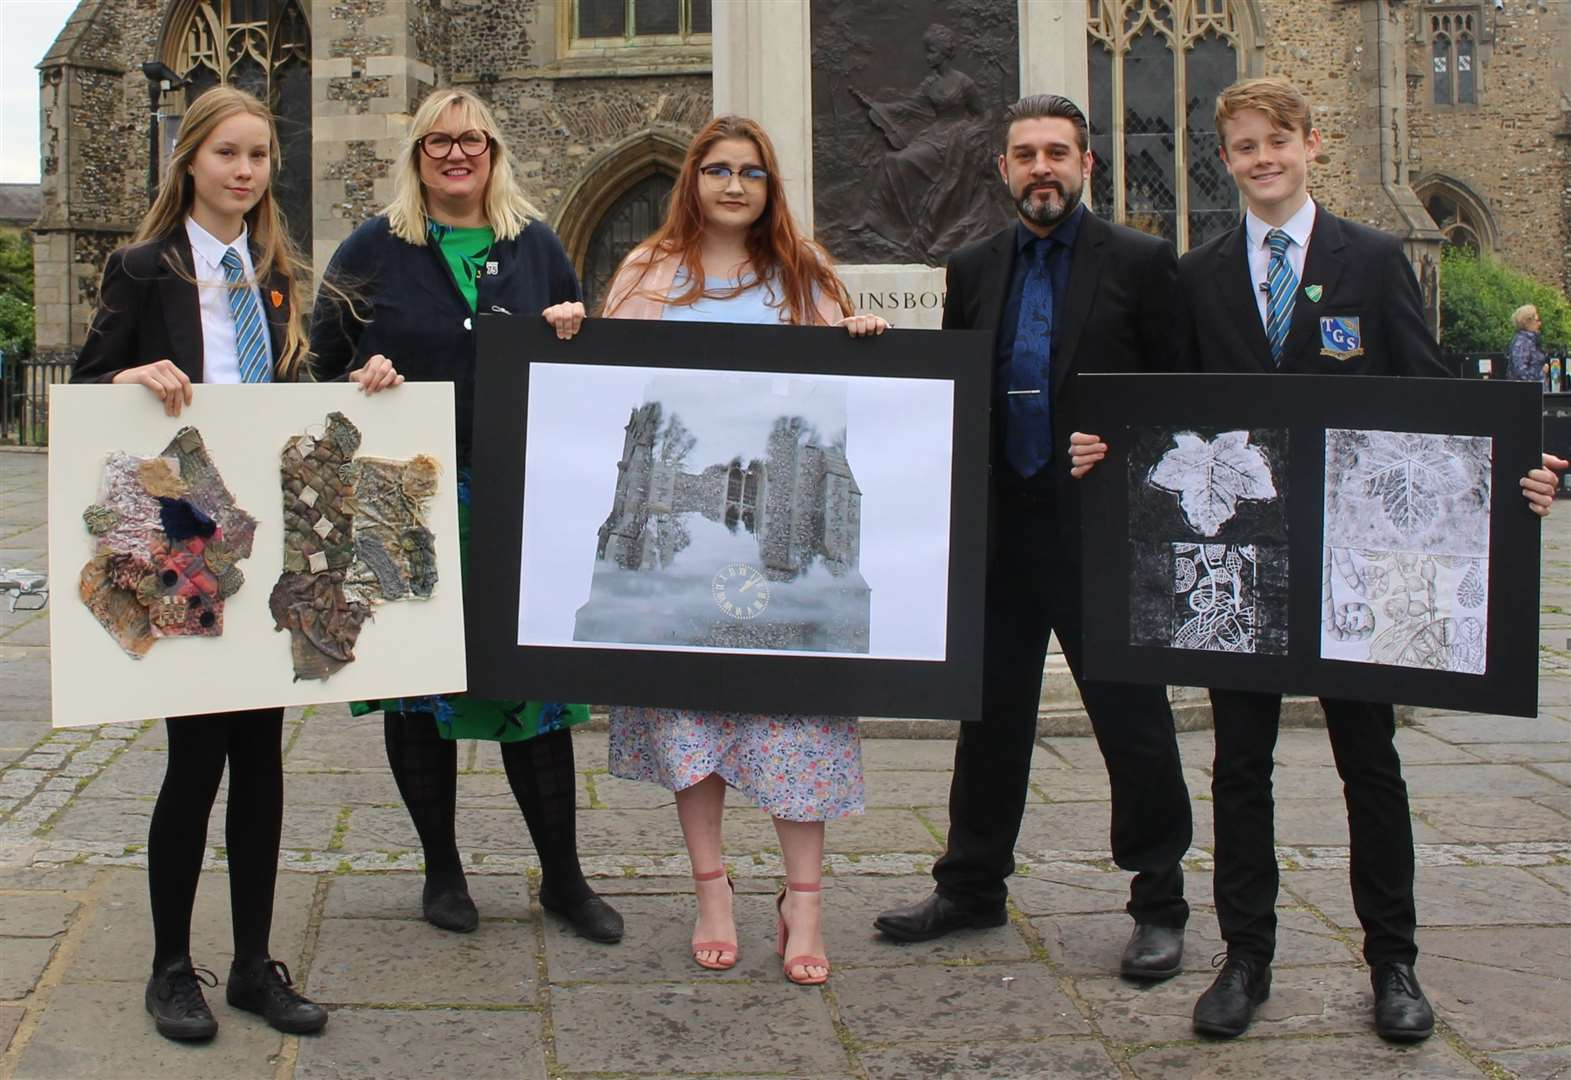 Sudbury businesses to showcase art by Thomas Gainsborough School students